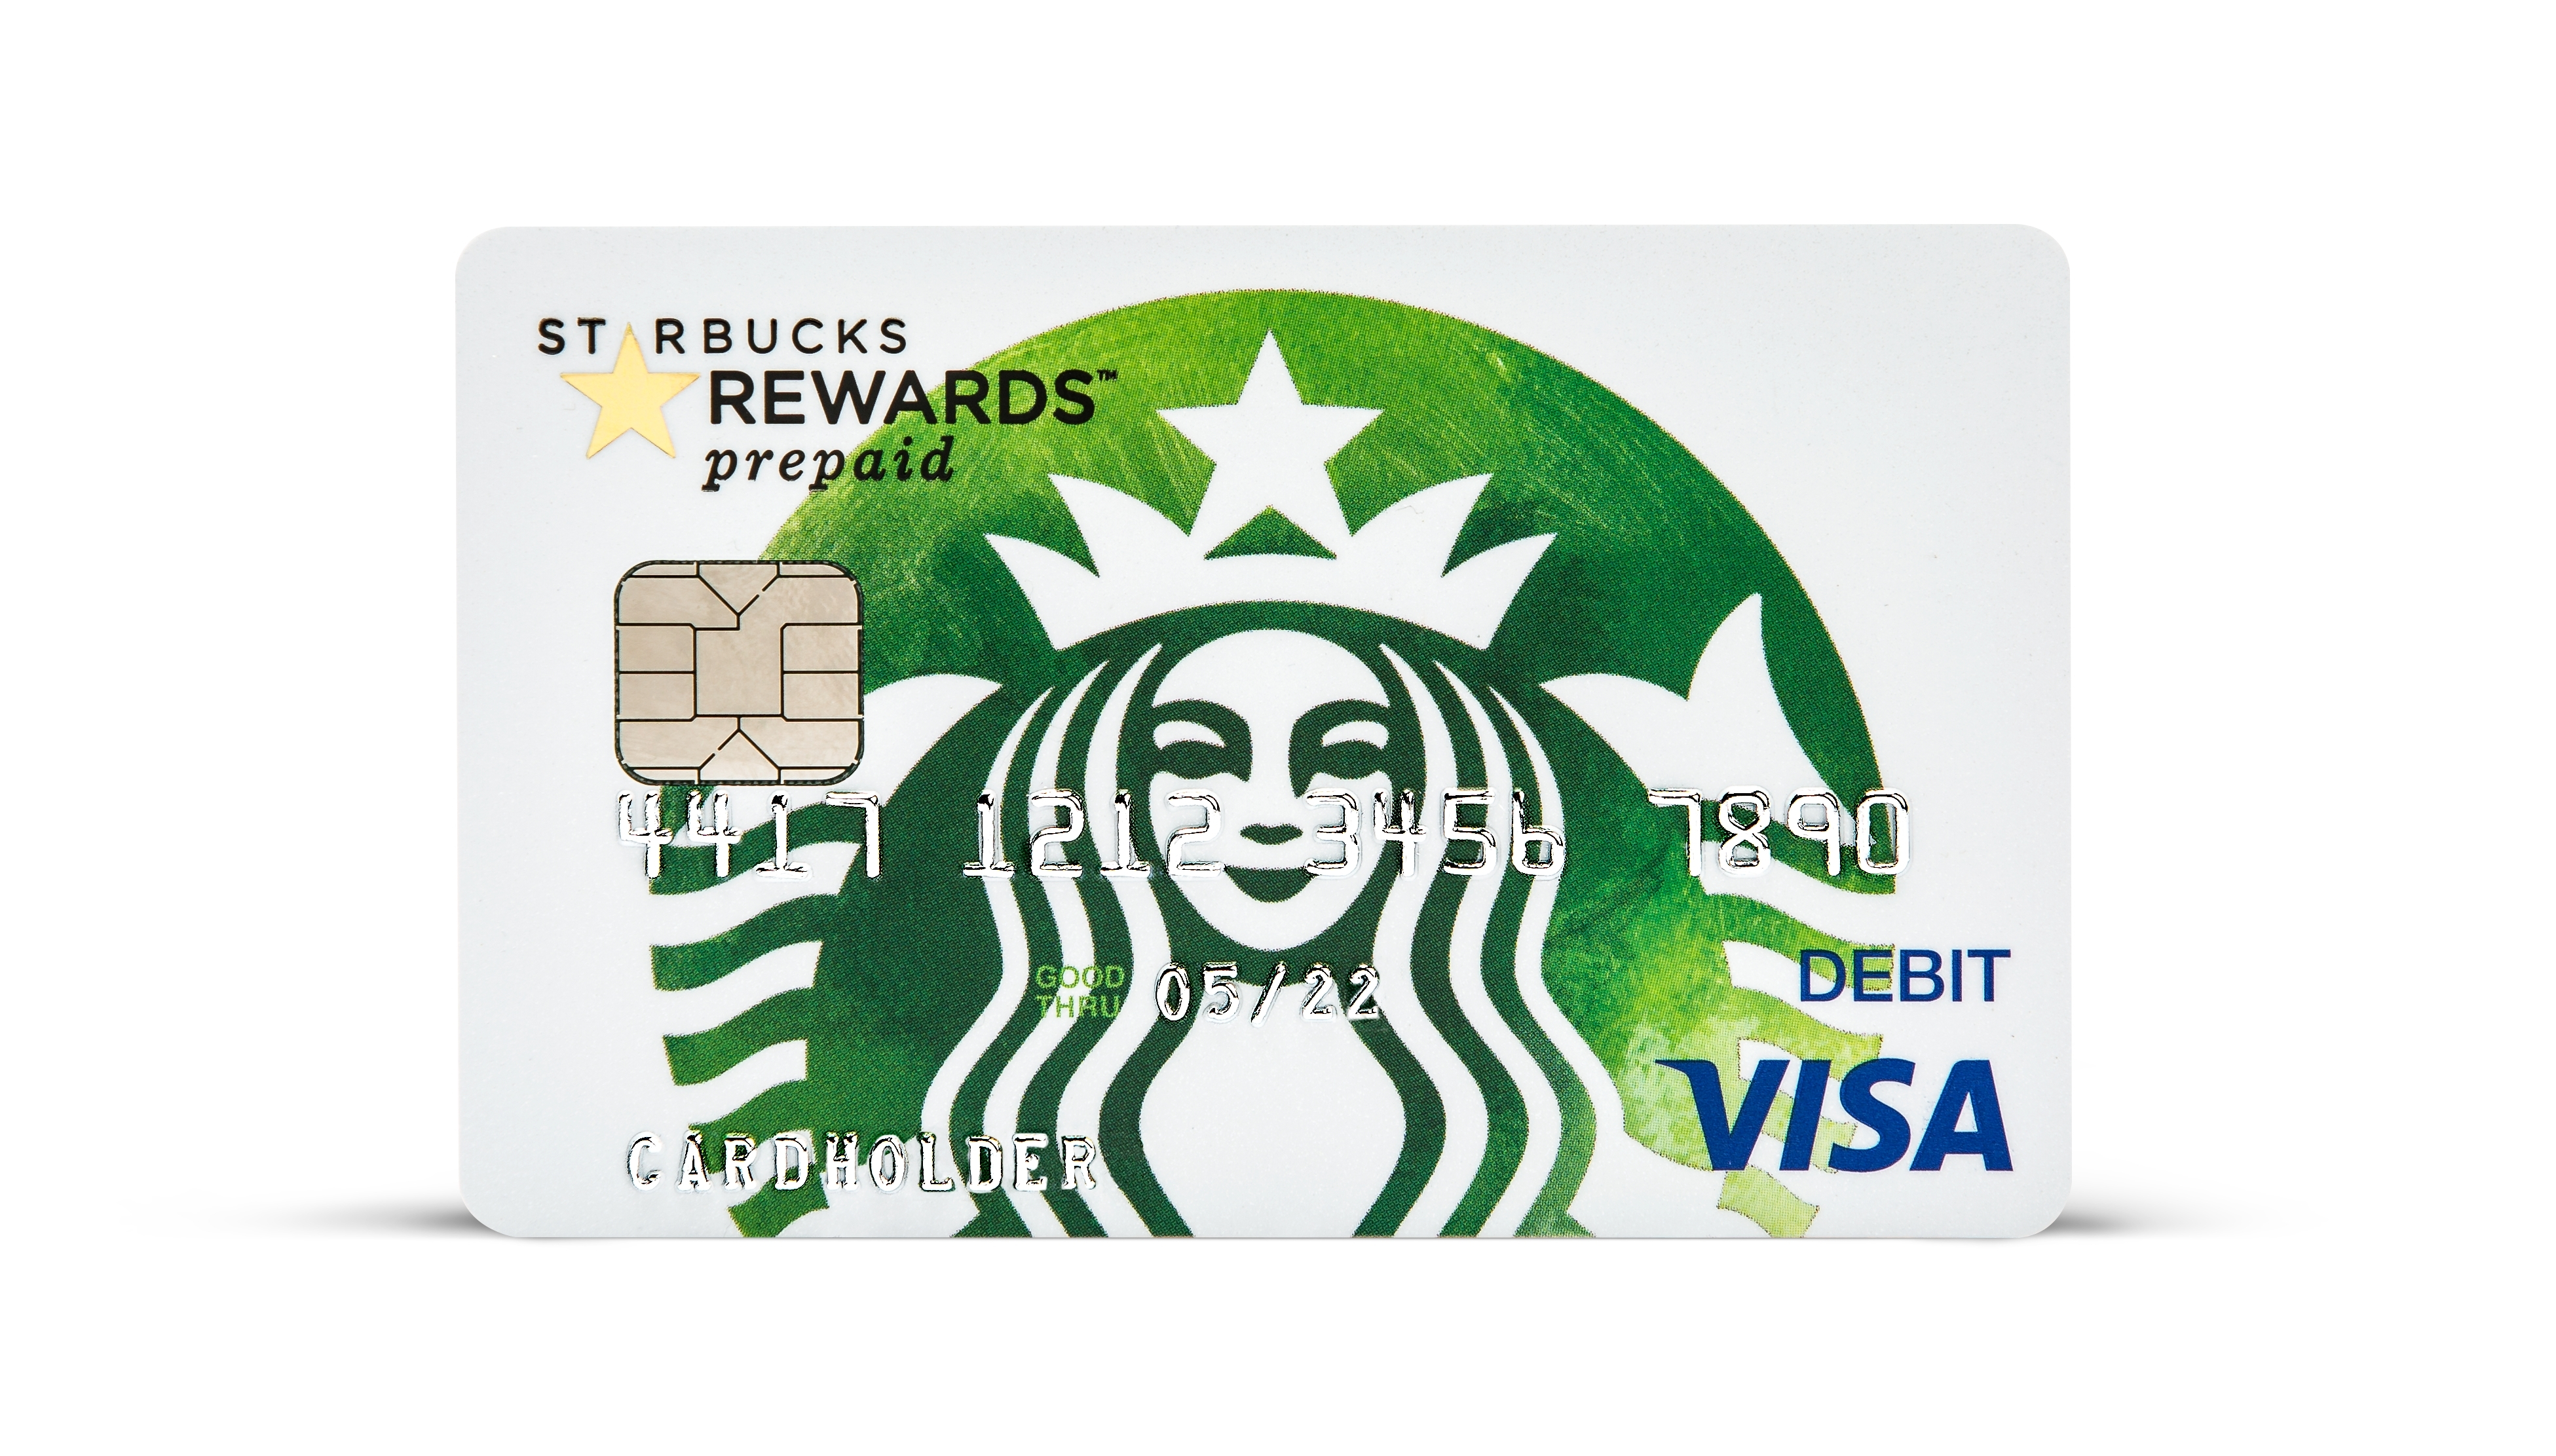 starbucks and chase introduce starbucks rewards visa prepaid card business wire - Where Can I Get A Prepaid Card